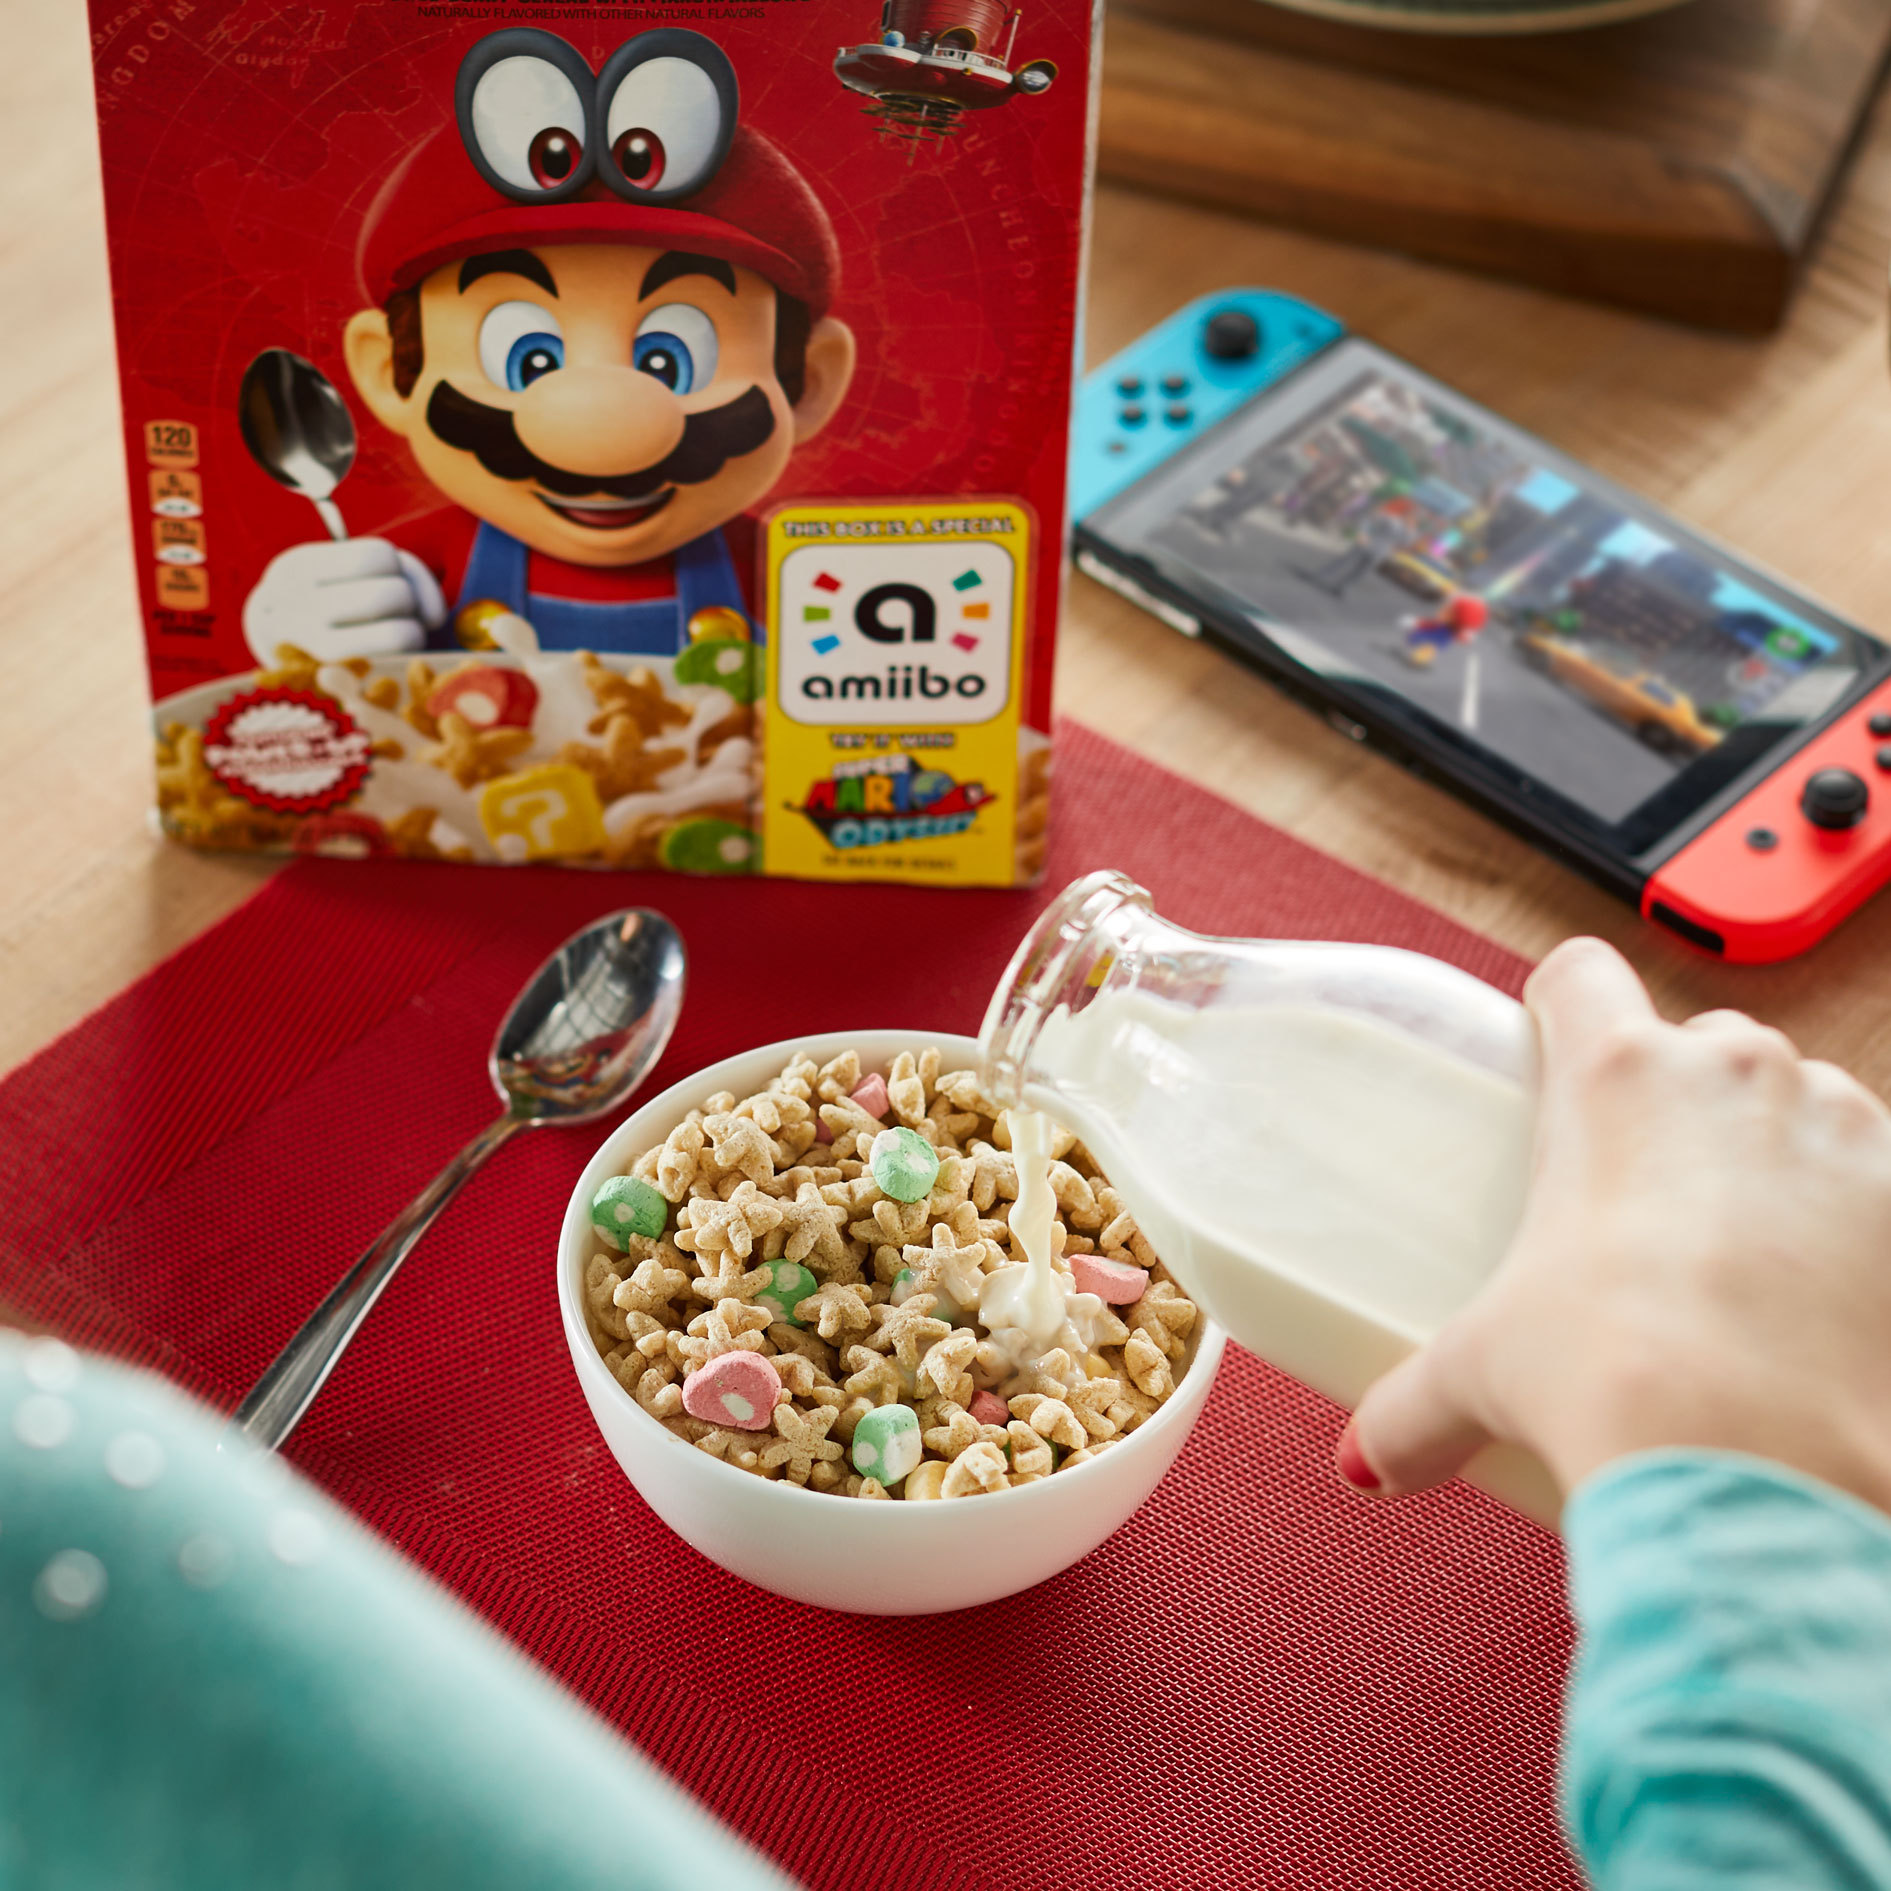 Kellogg's Confirm Super Mario Breakfast Cereal That Doubles as an amiibo